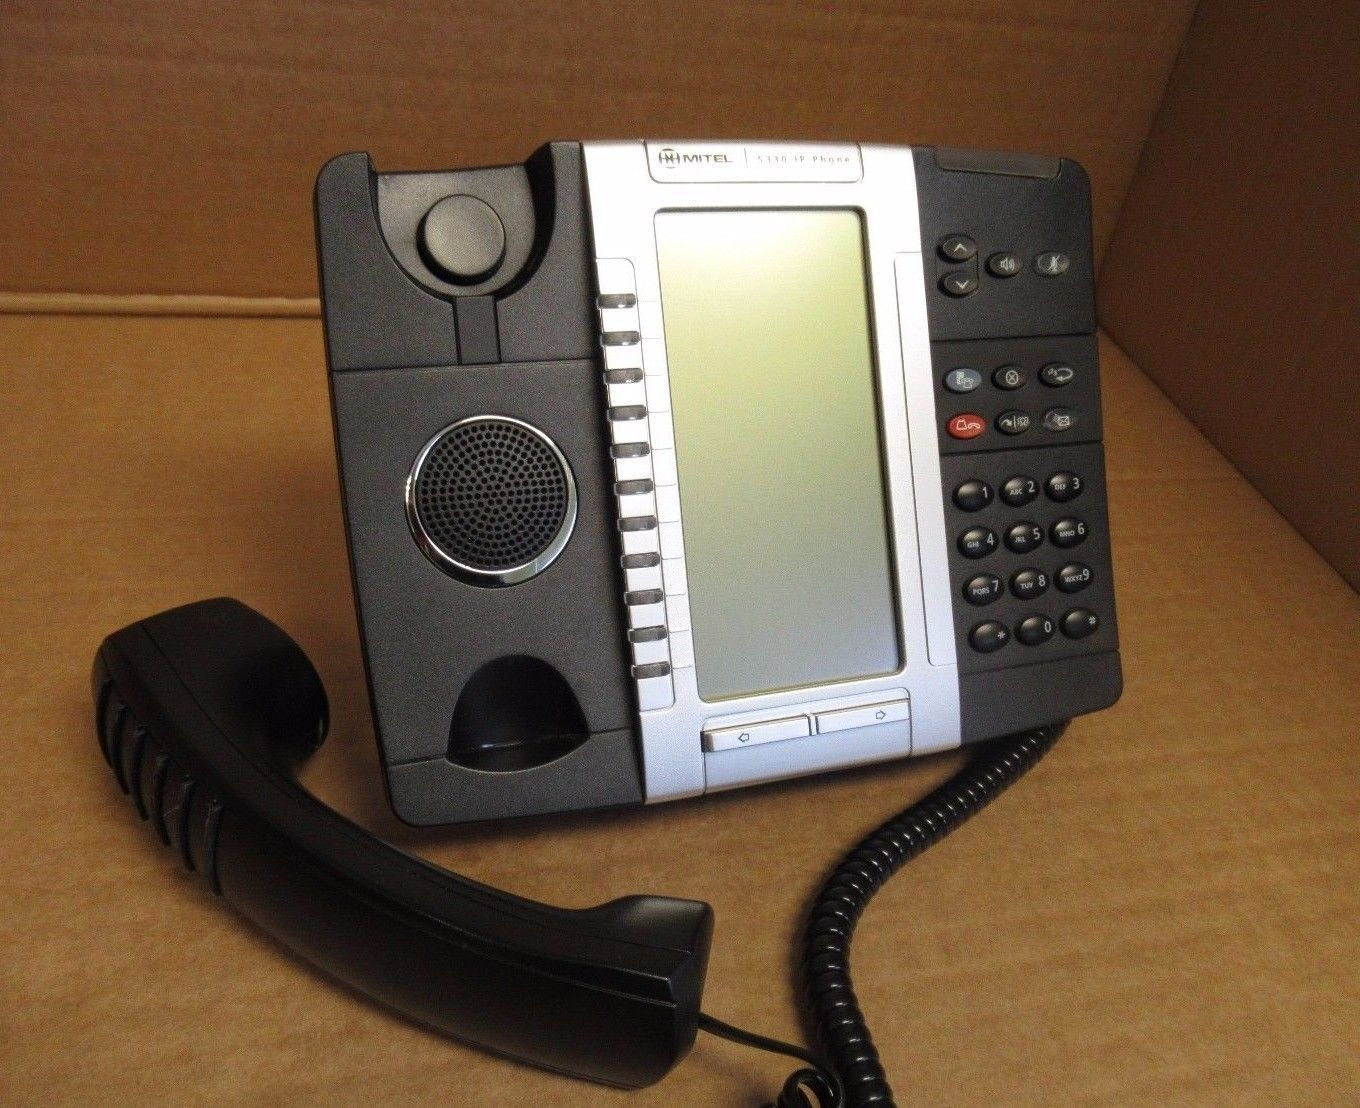 Mitel 5224 IP VoIP 24 Multi key Dual Mode Enterprise Phone with Stand